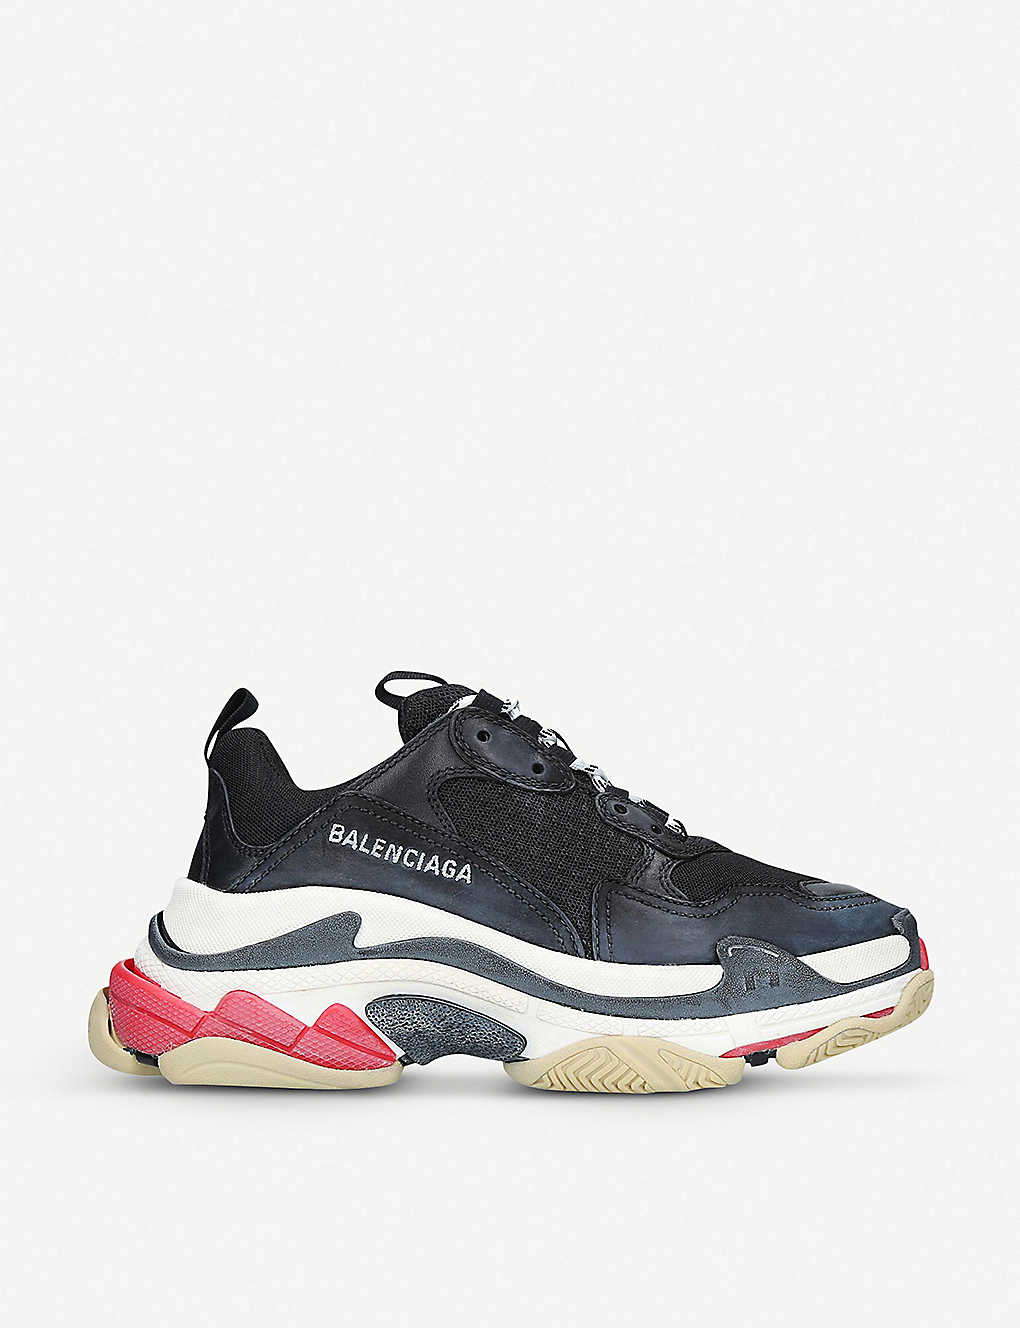 0a10b94b7aec Triple S leather and mesh trainers - Blkother ...